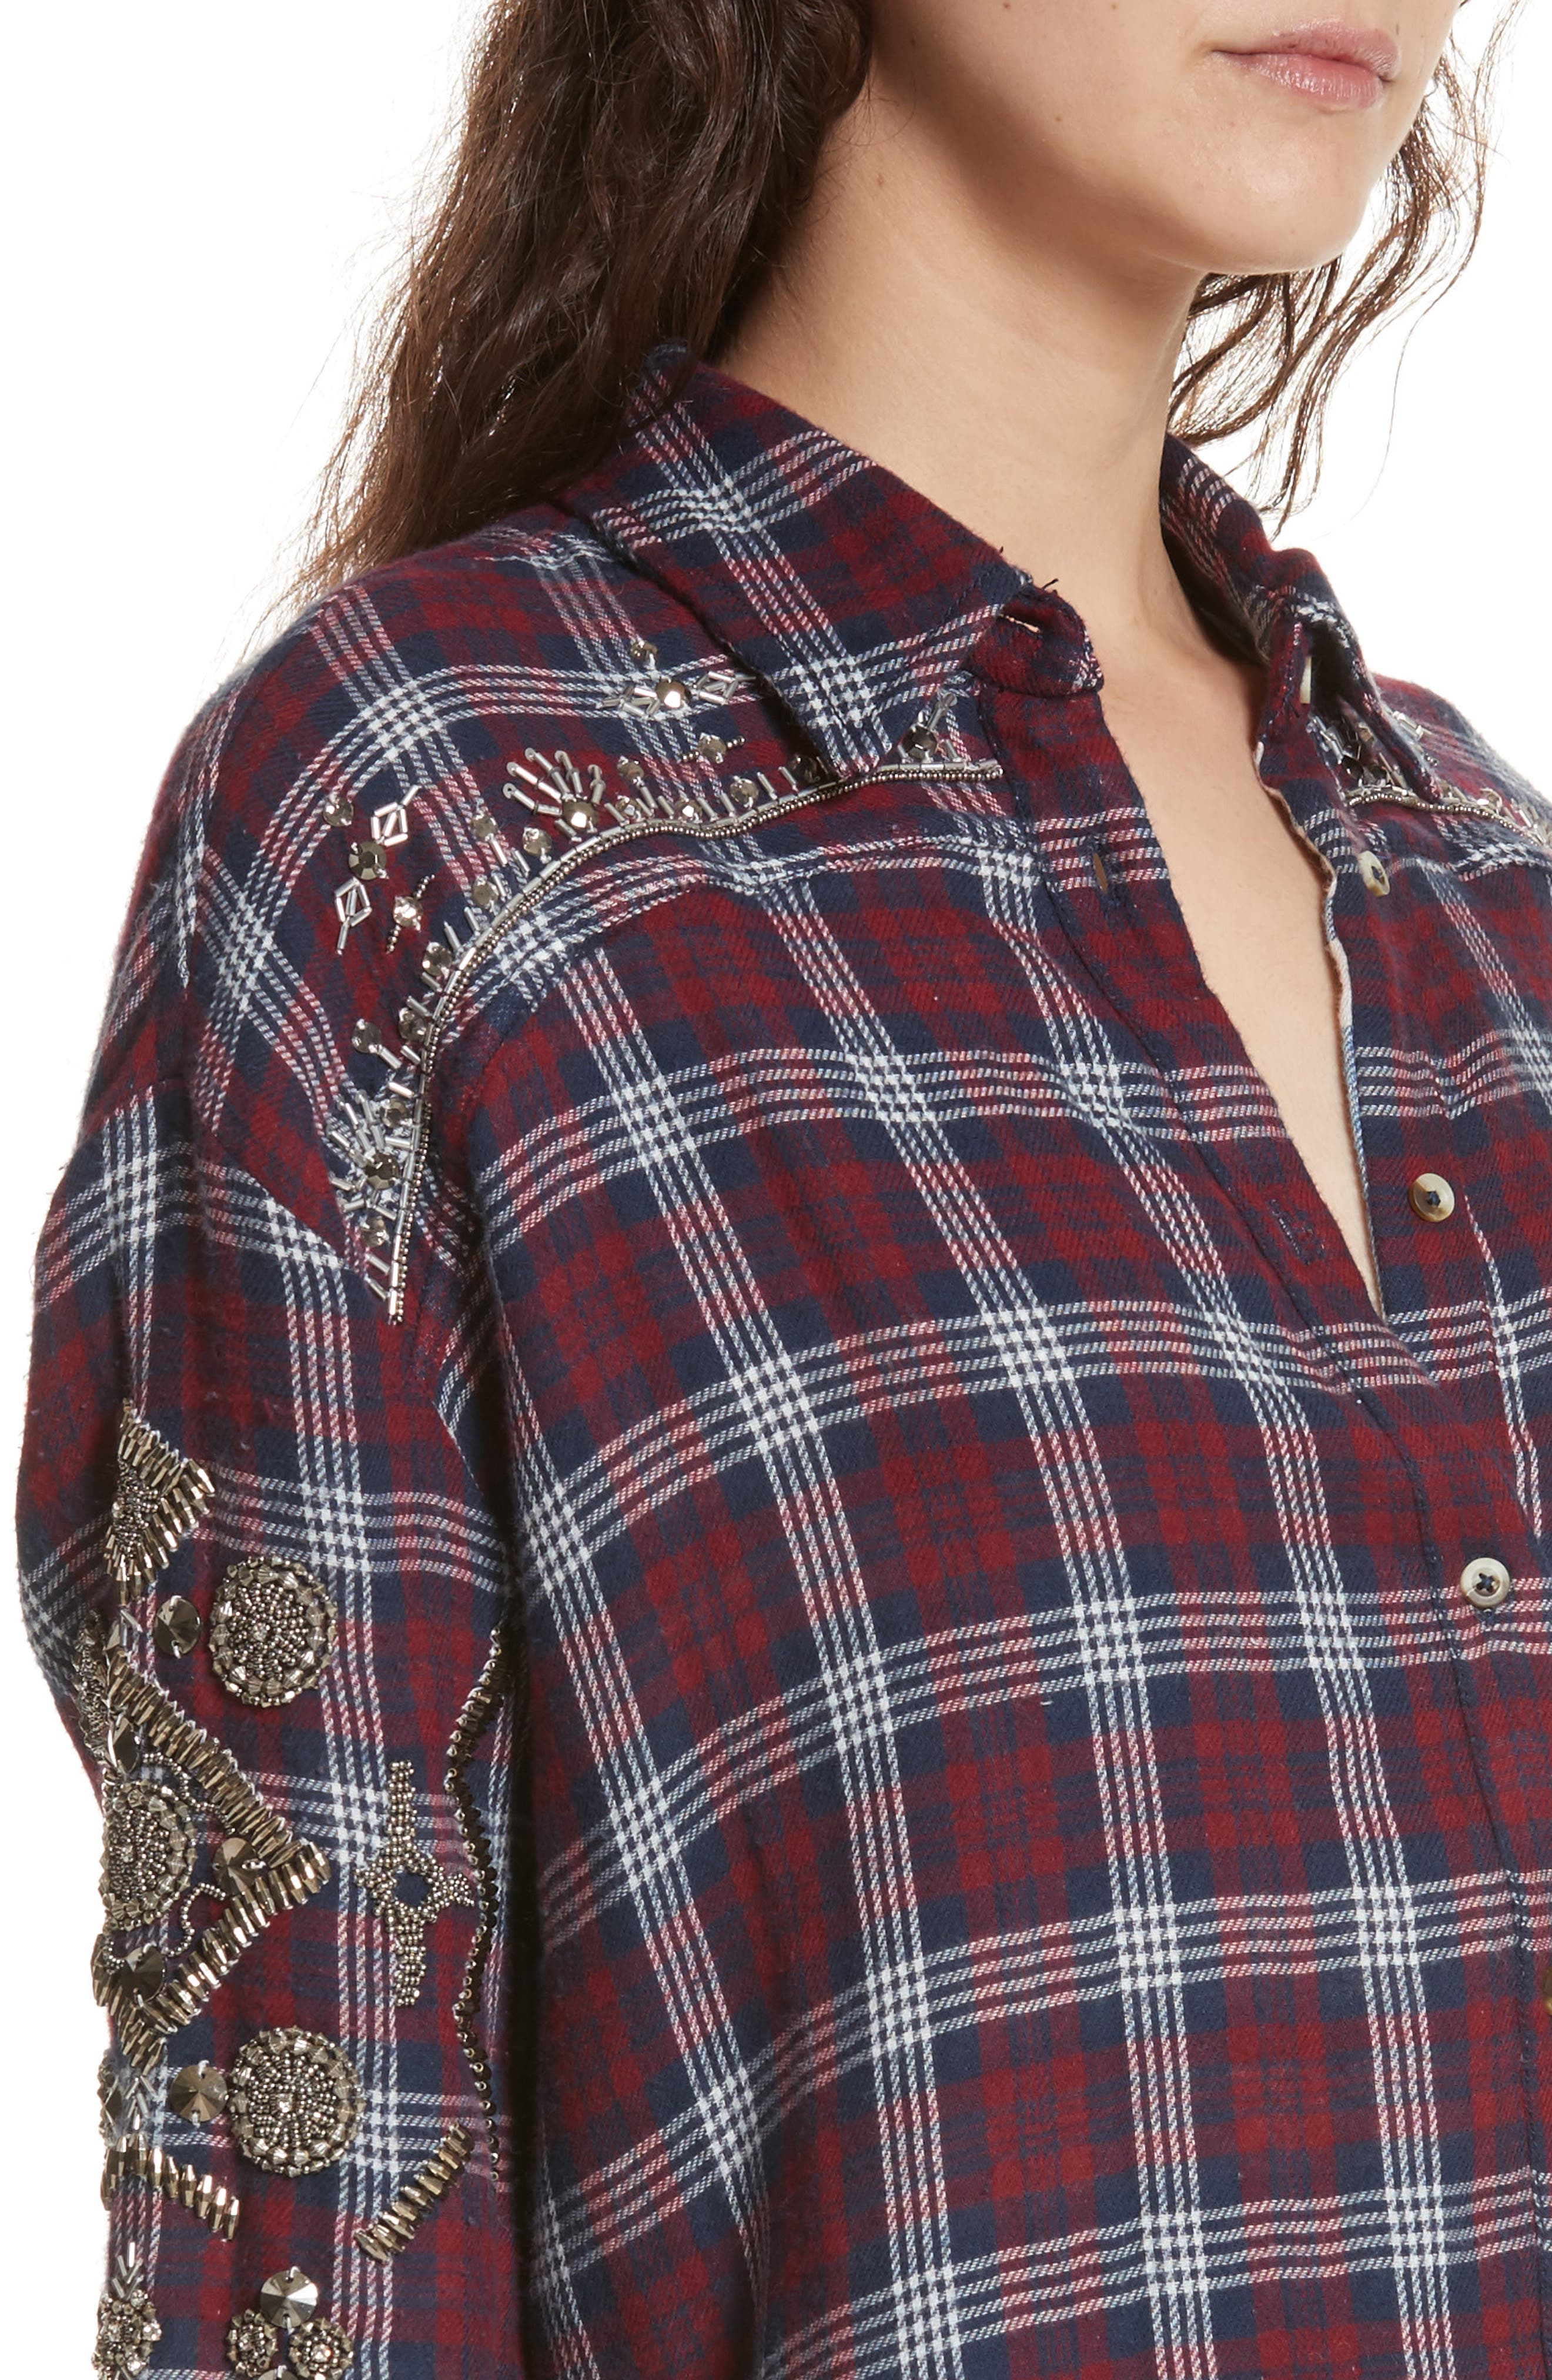 Downtown Romance Embellished Shirt,                             Alternate thumbnail 4, color,                             Red